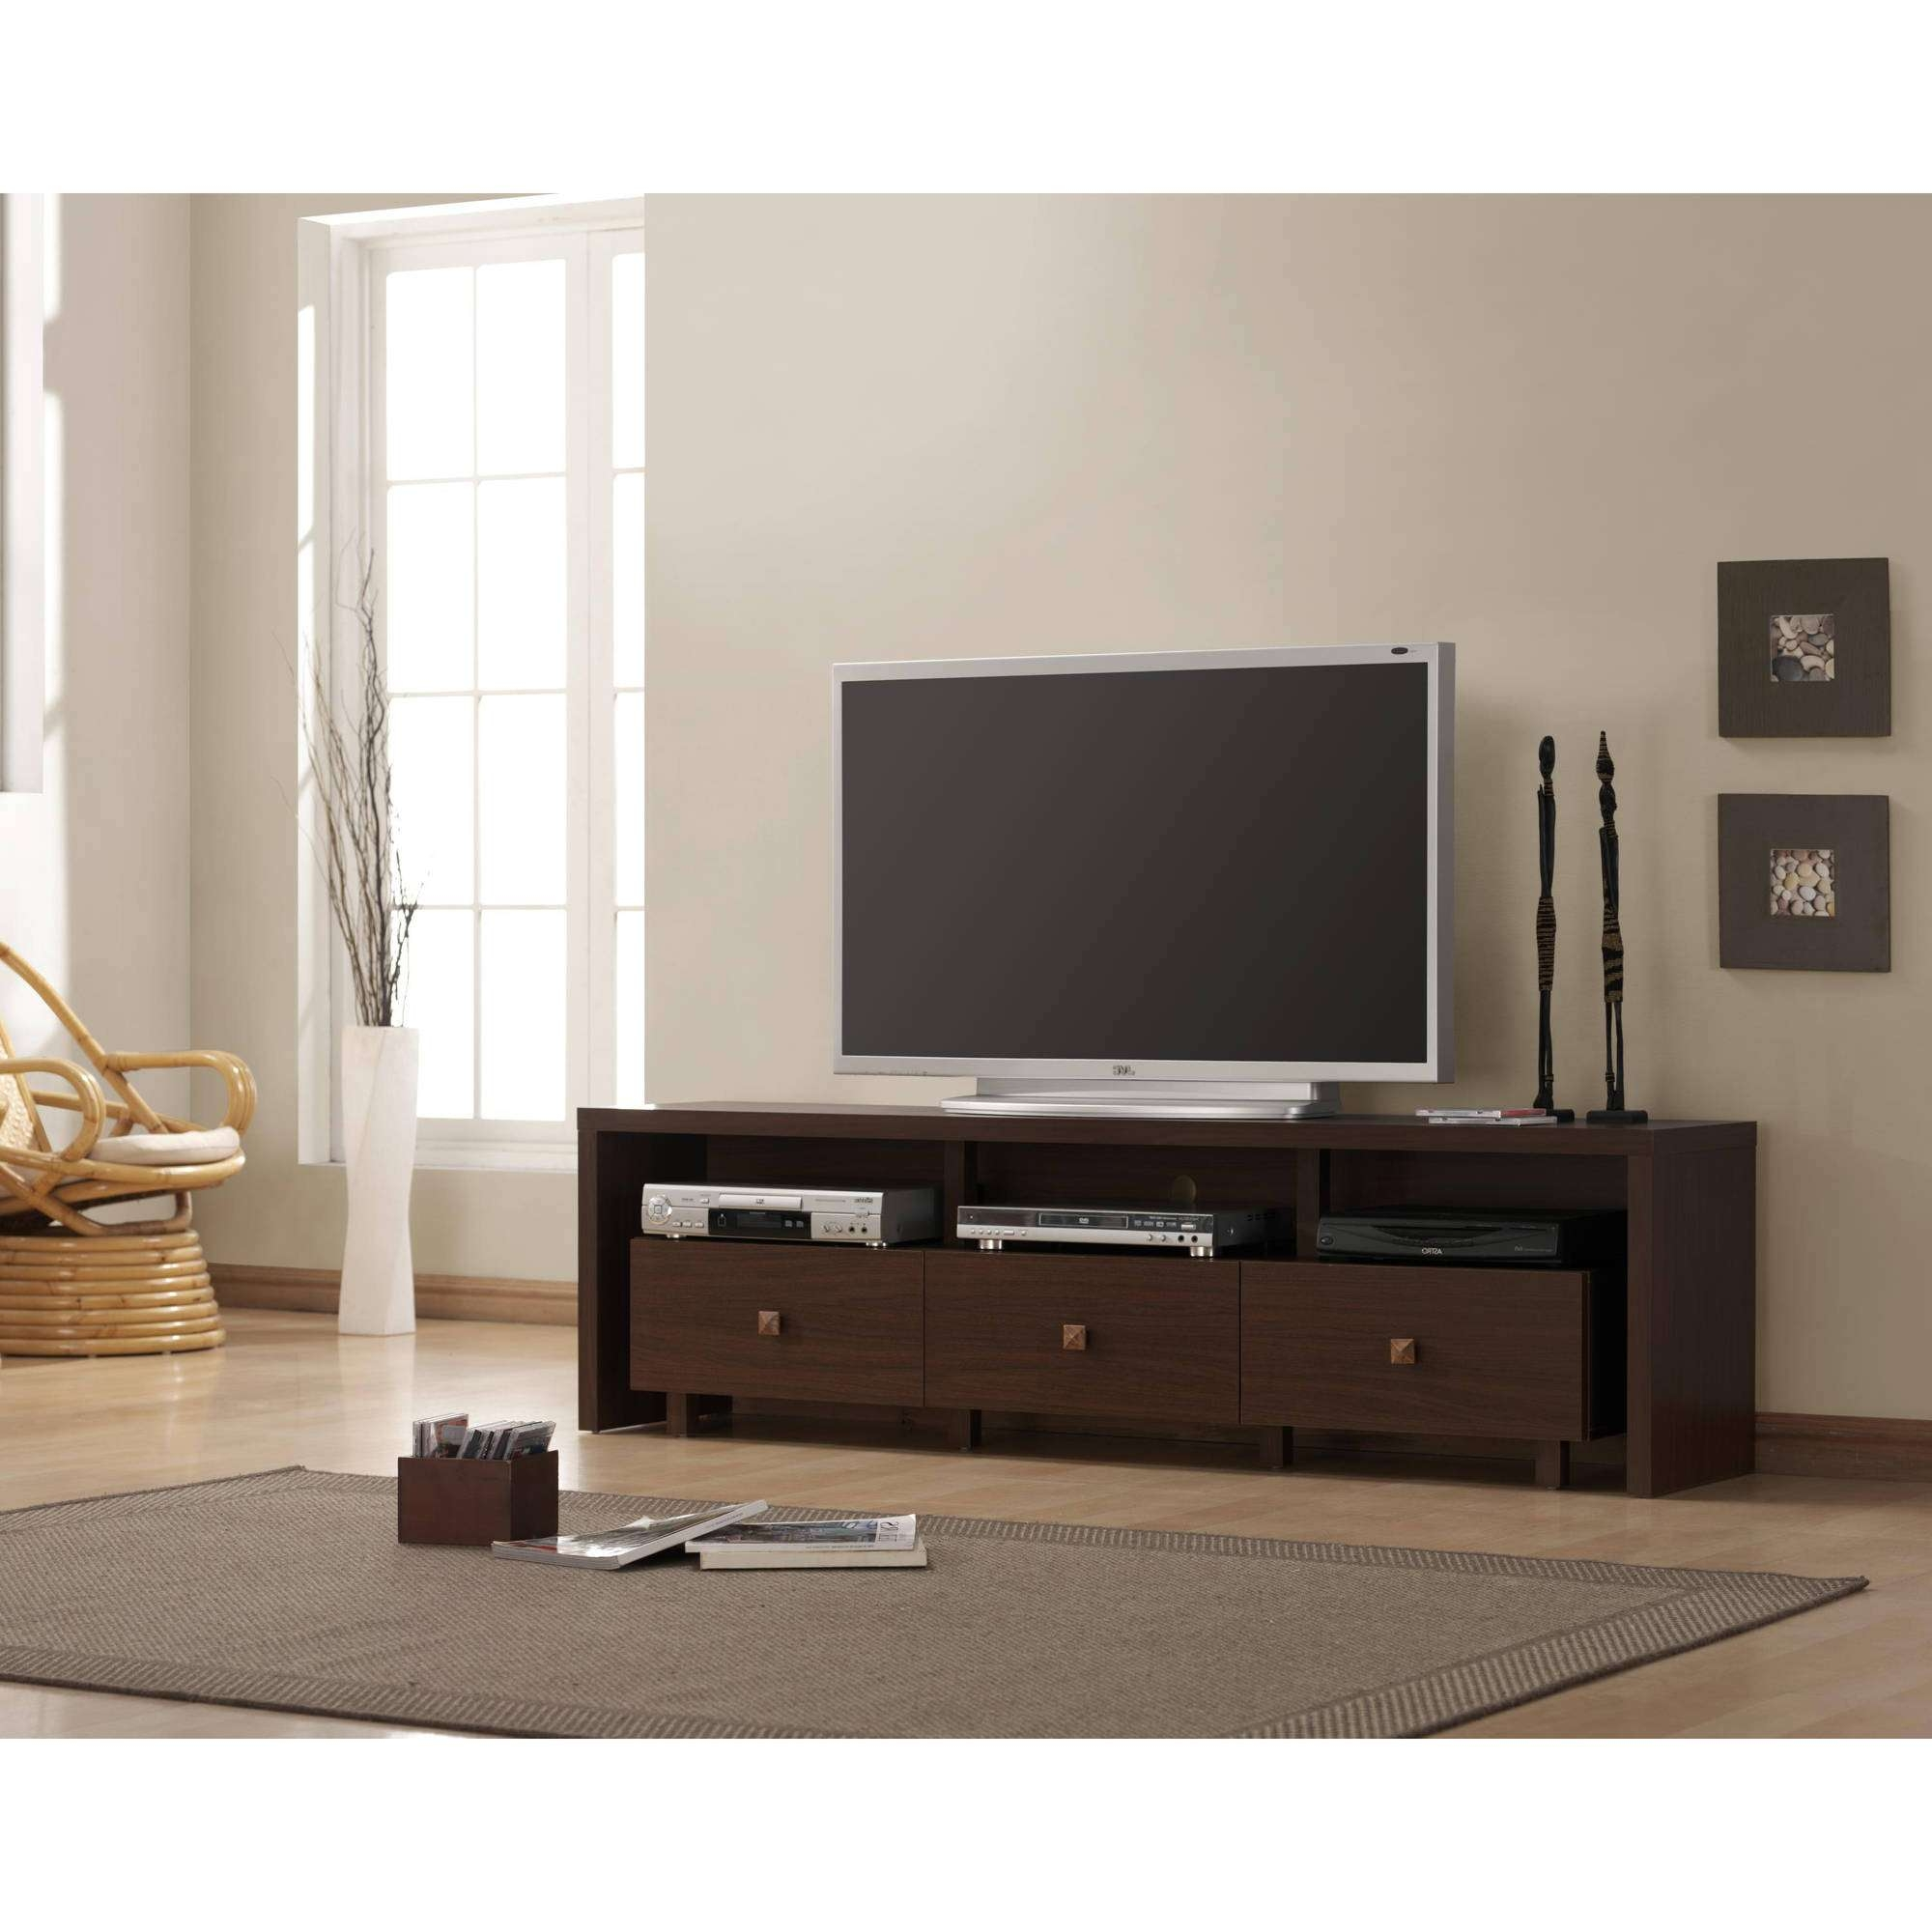 Tempting Click To Change Jenson Tv Stand Pine Value City Furniture Within Tv Cabinets With Storage (View 13 of 20)